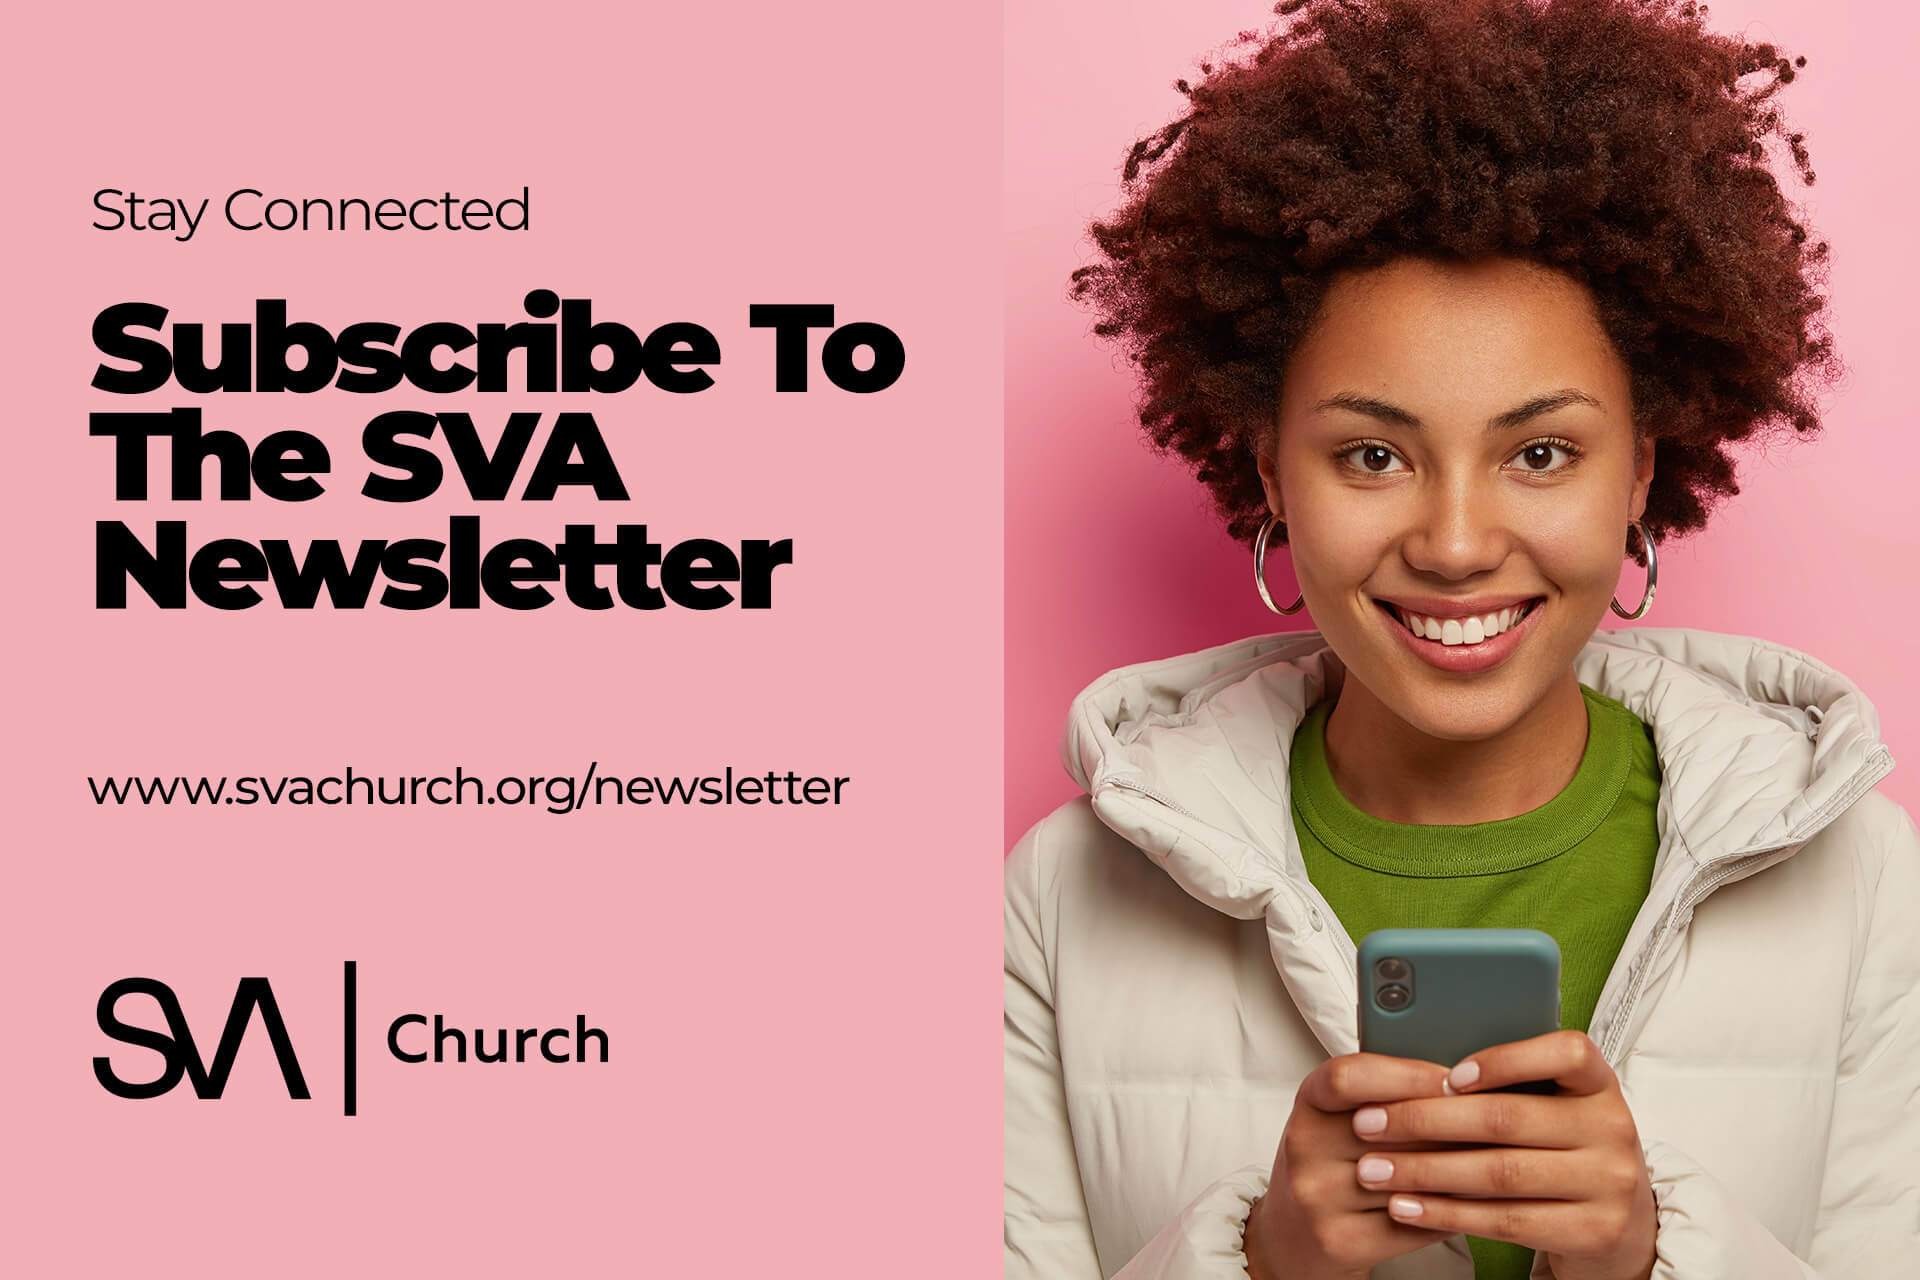 Subscribe to the SVA Church Newsletter